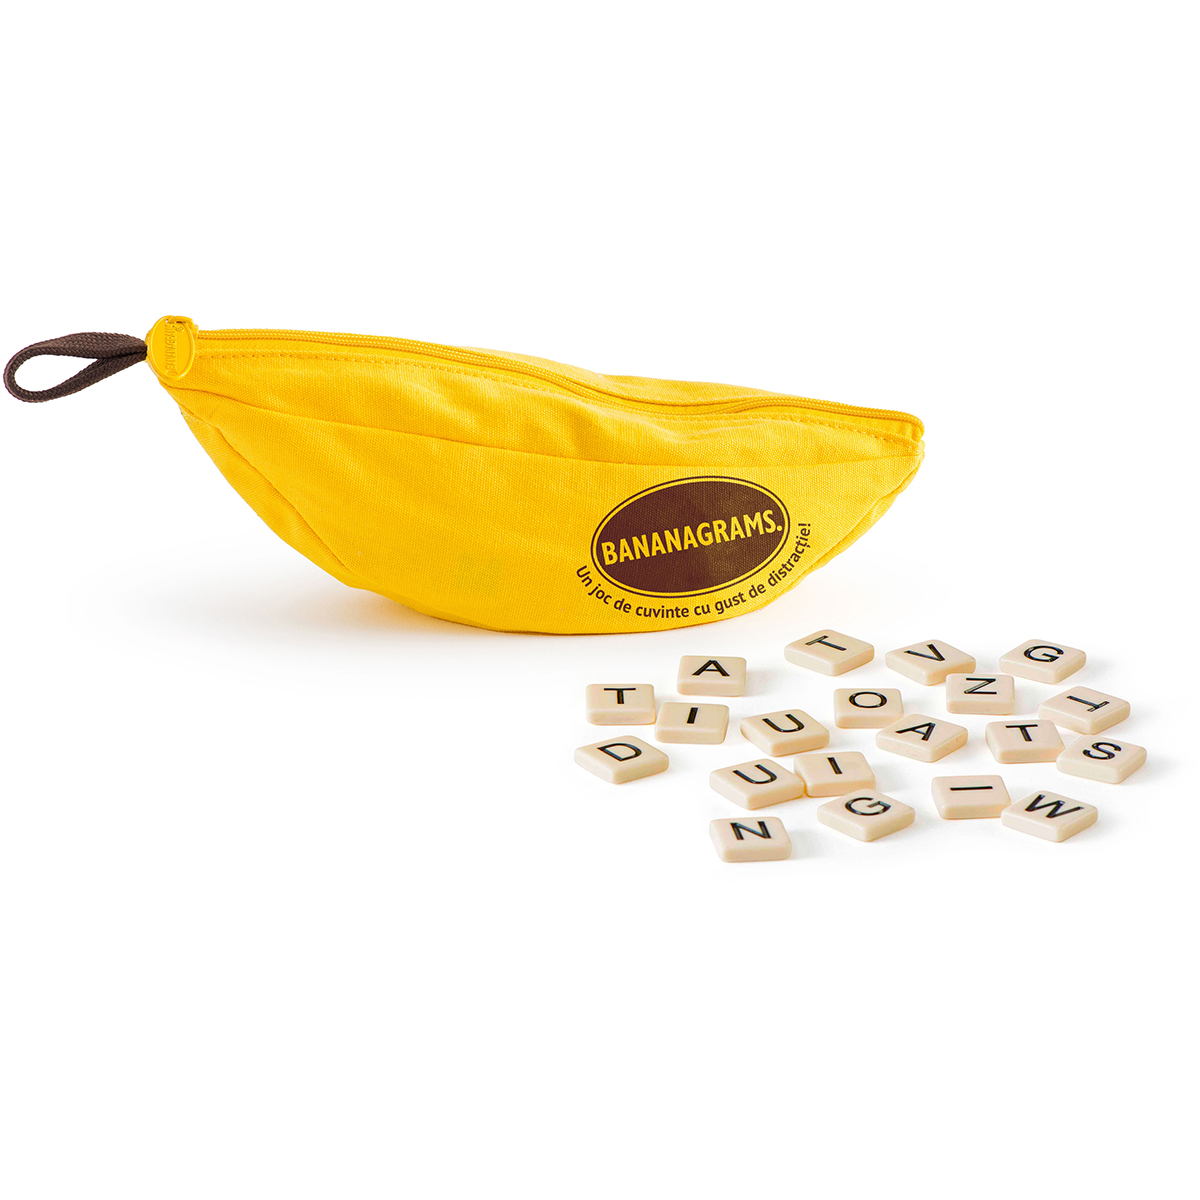 Joc de societate Bananagrams